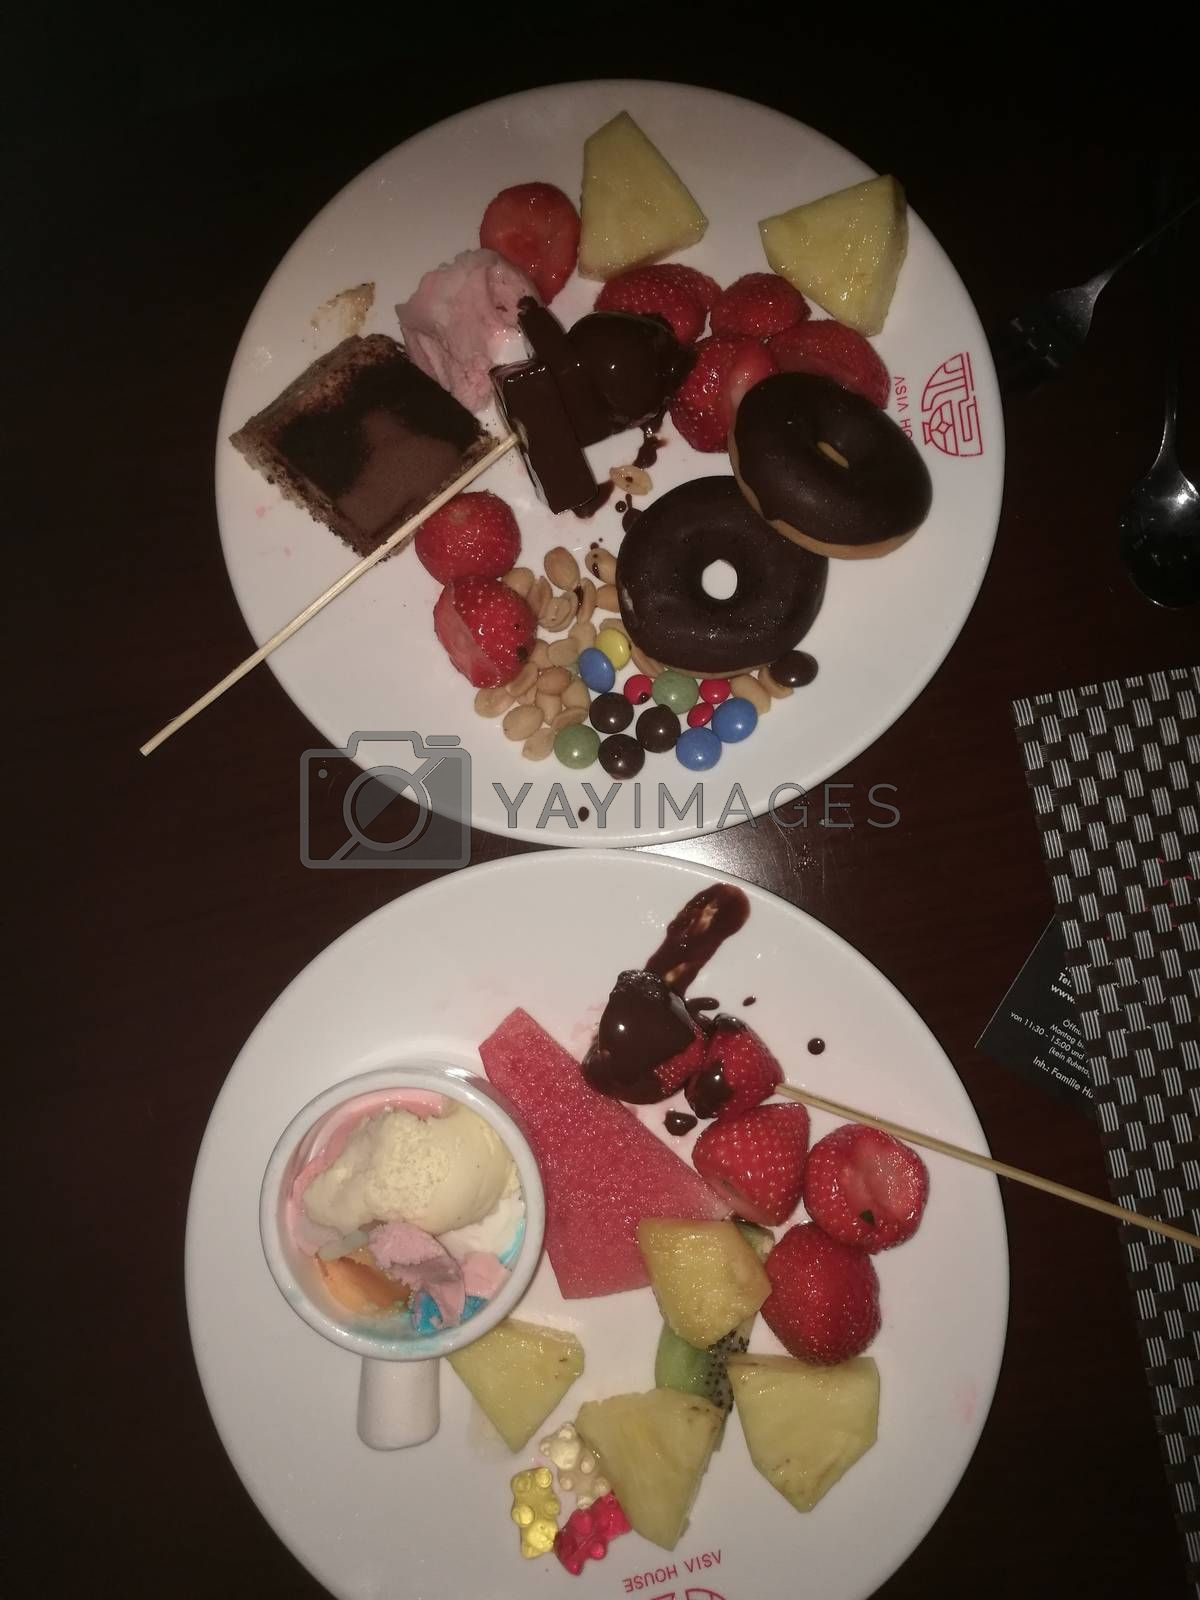 Royalty free image of A bowl of donuts and fruit on a plate by balage941